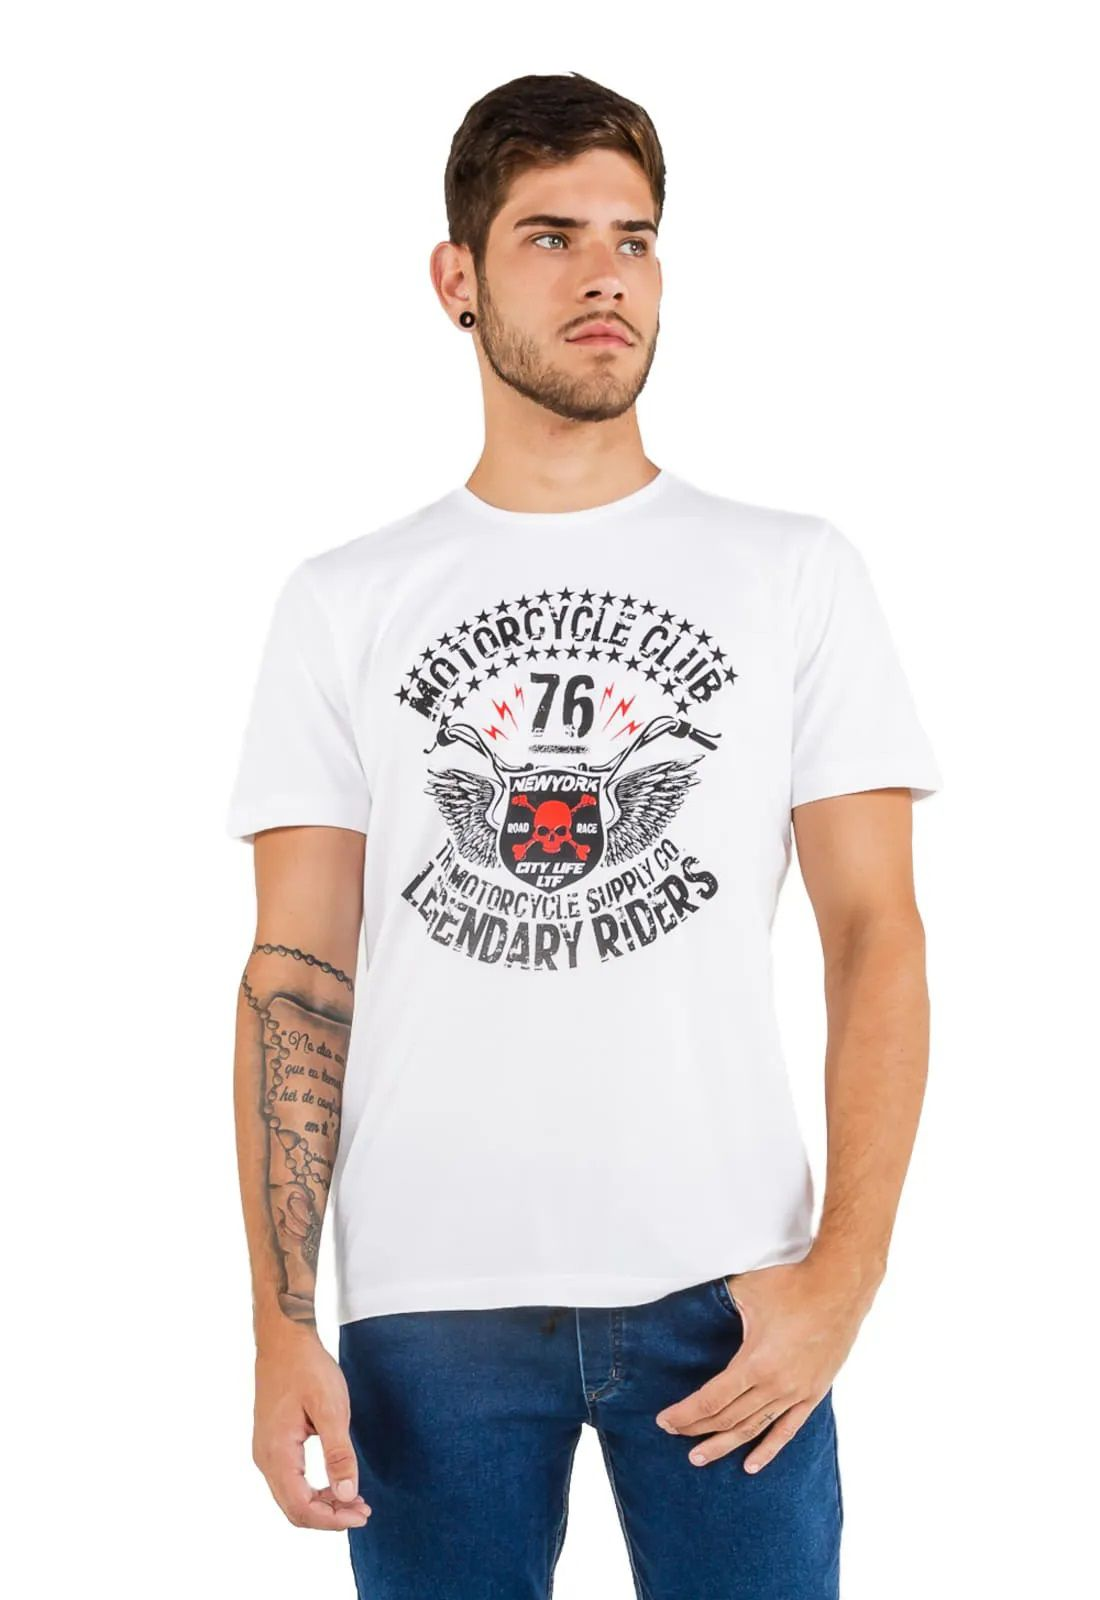 3 T-shirts Masculina - Estampa Rock Star - Motorcycle Club - High School